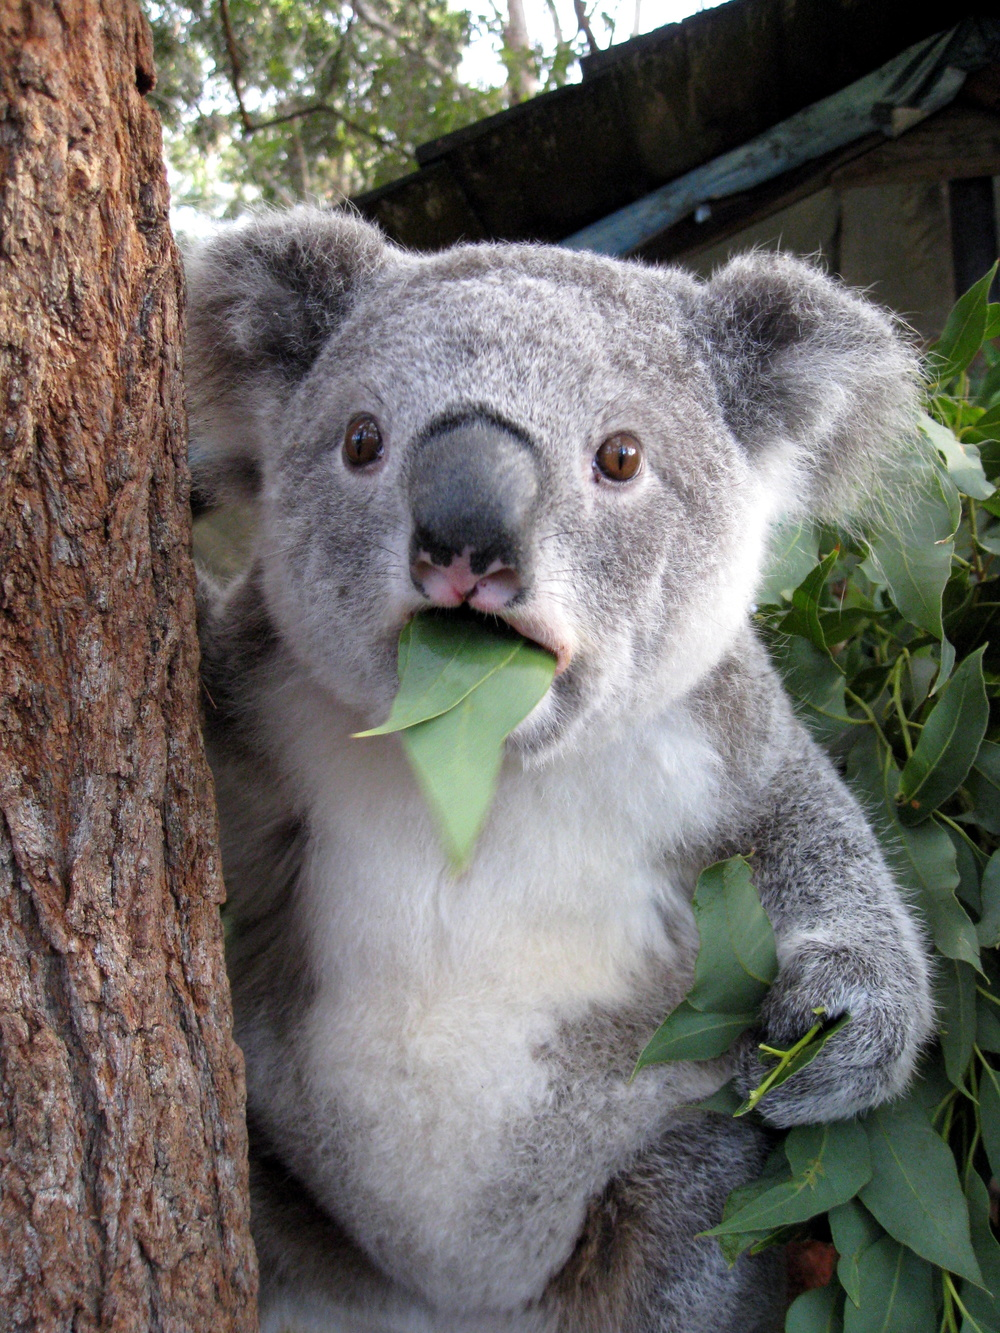 Koala Eating Eucalyptus Leaves 761.63 Kb